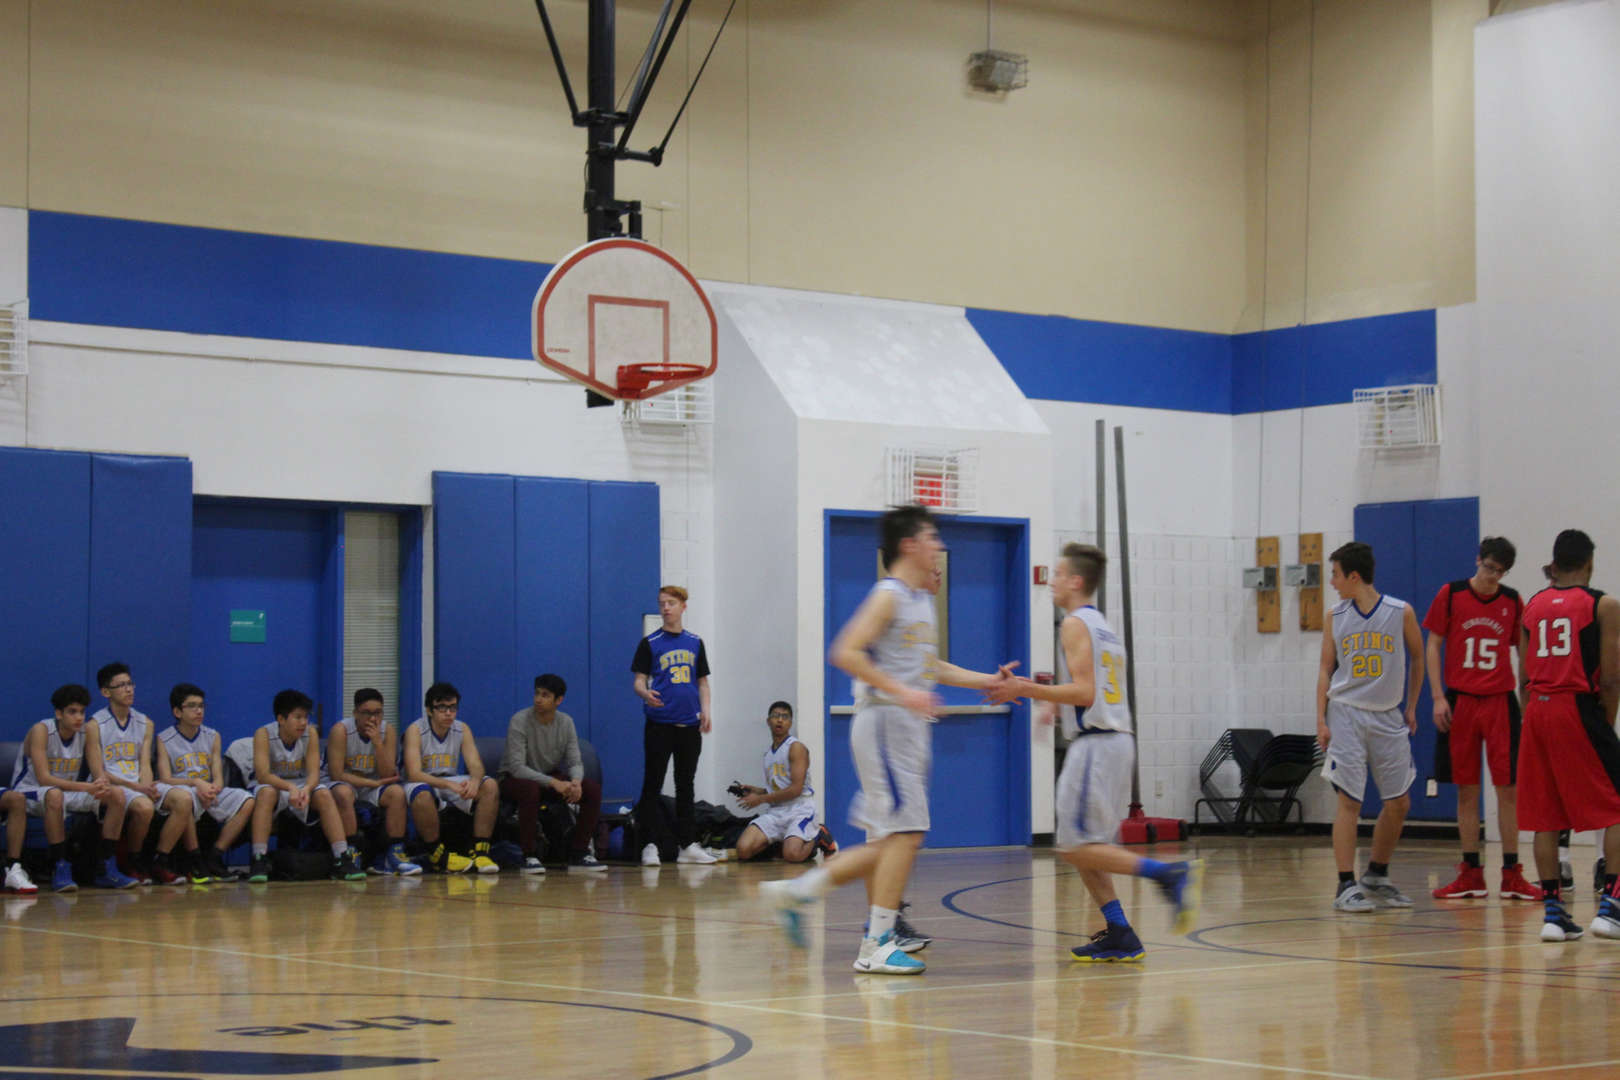 BSGE basketball players on the court while others watch from the sidelines